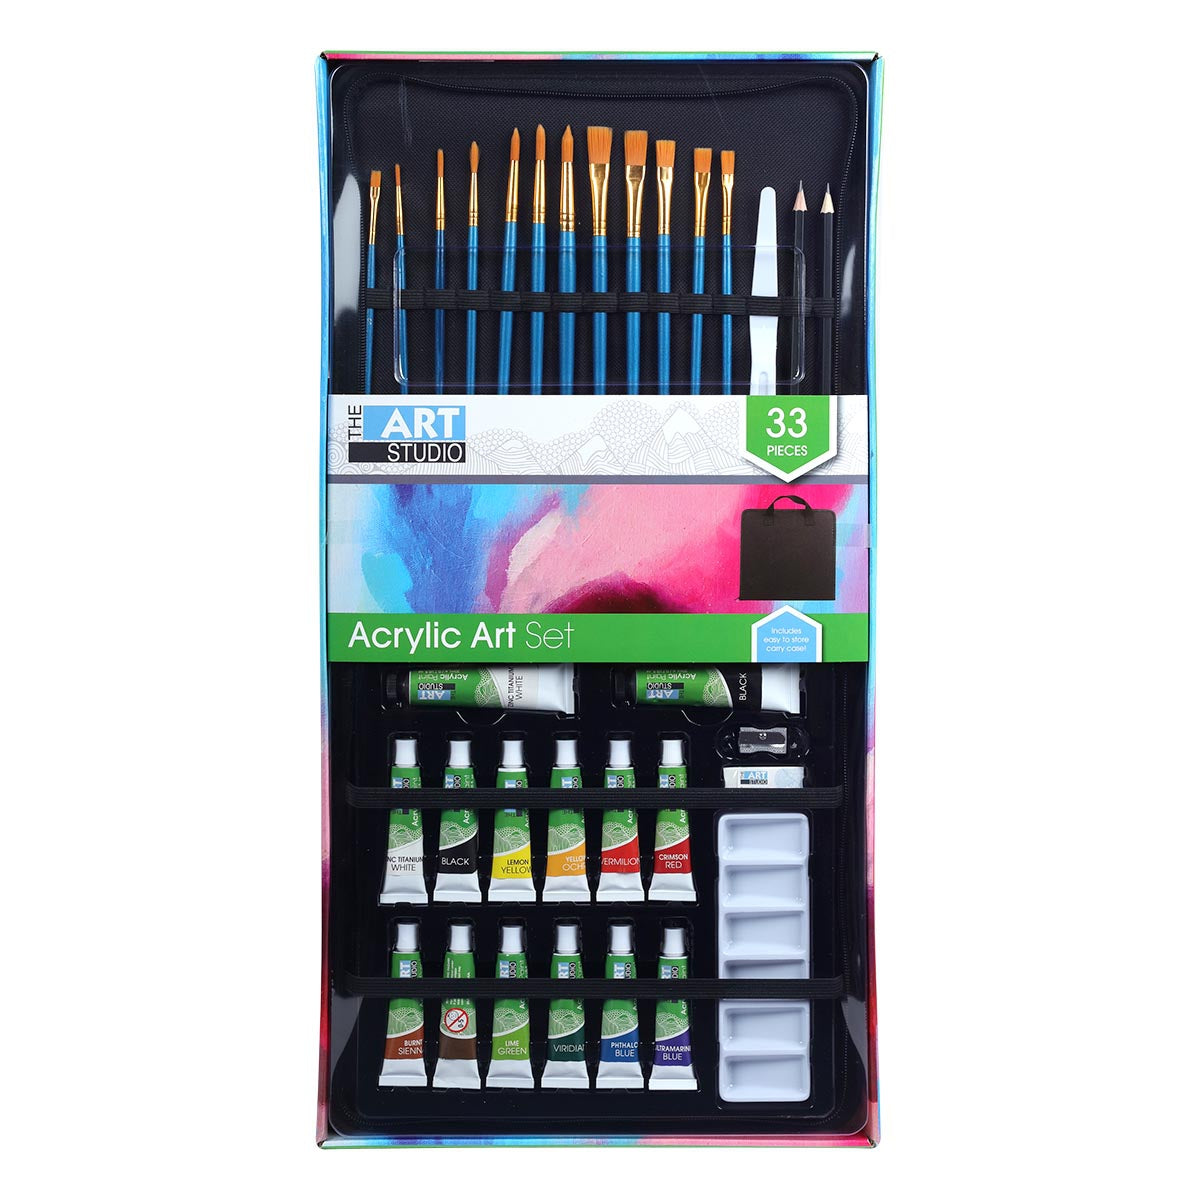 Image of The Art Studio Acrylic Paint and Brush Set 33 Pieces